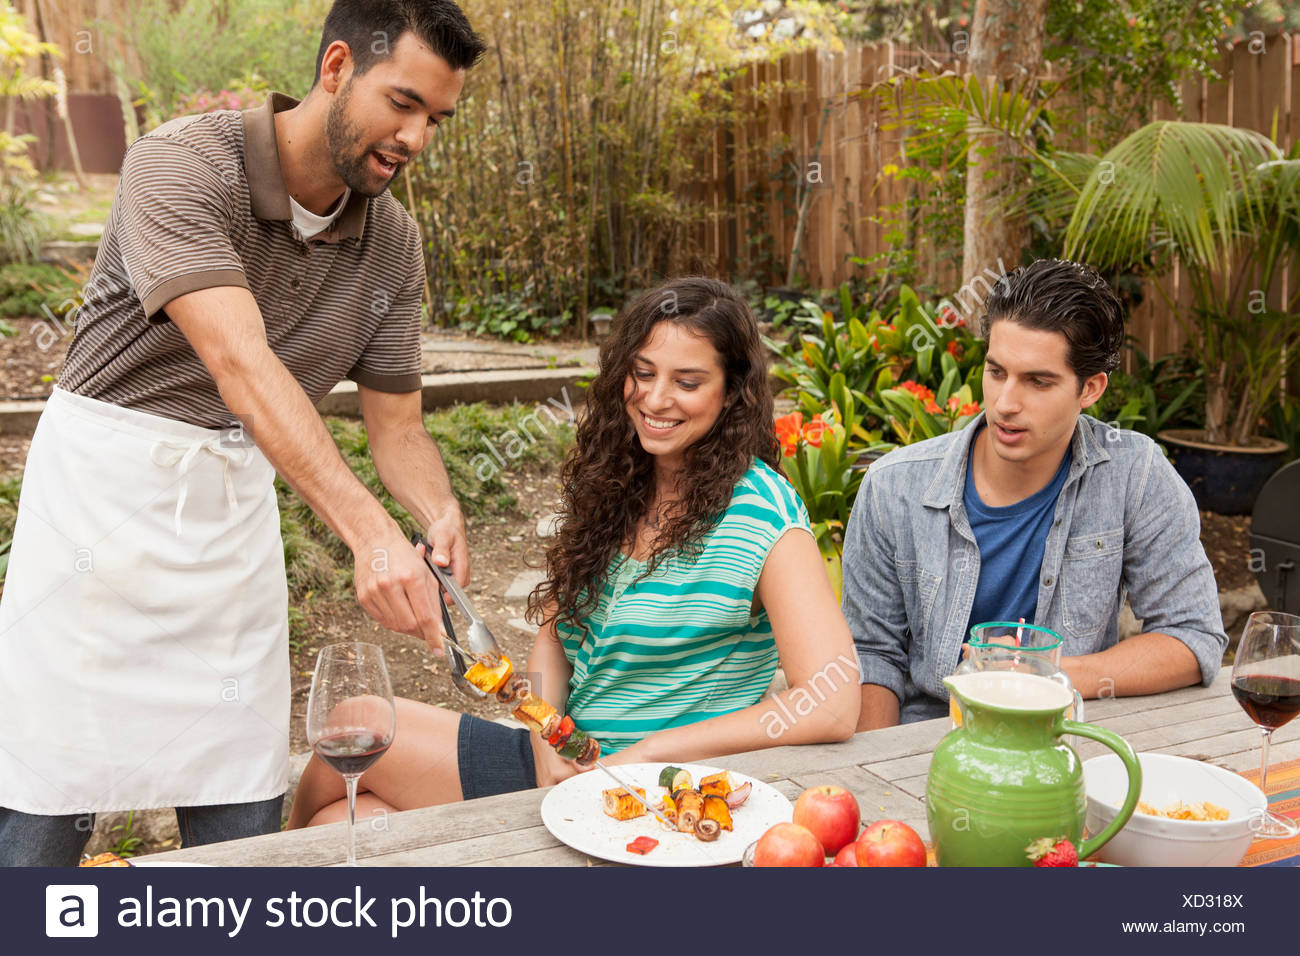 Friends sitting around table sharing barbecue food - Stock Image